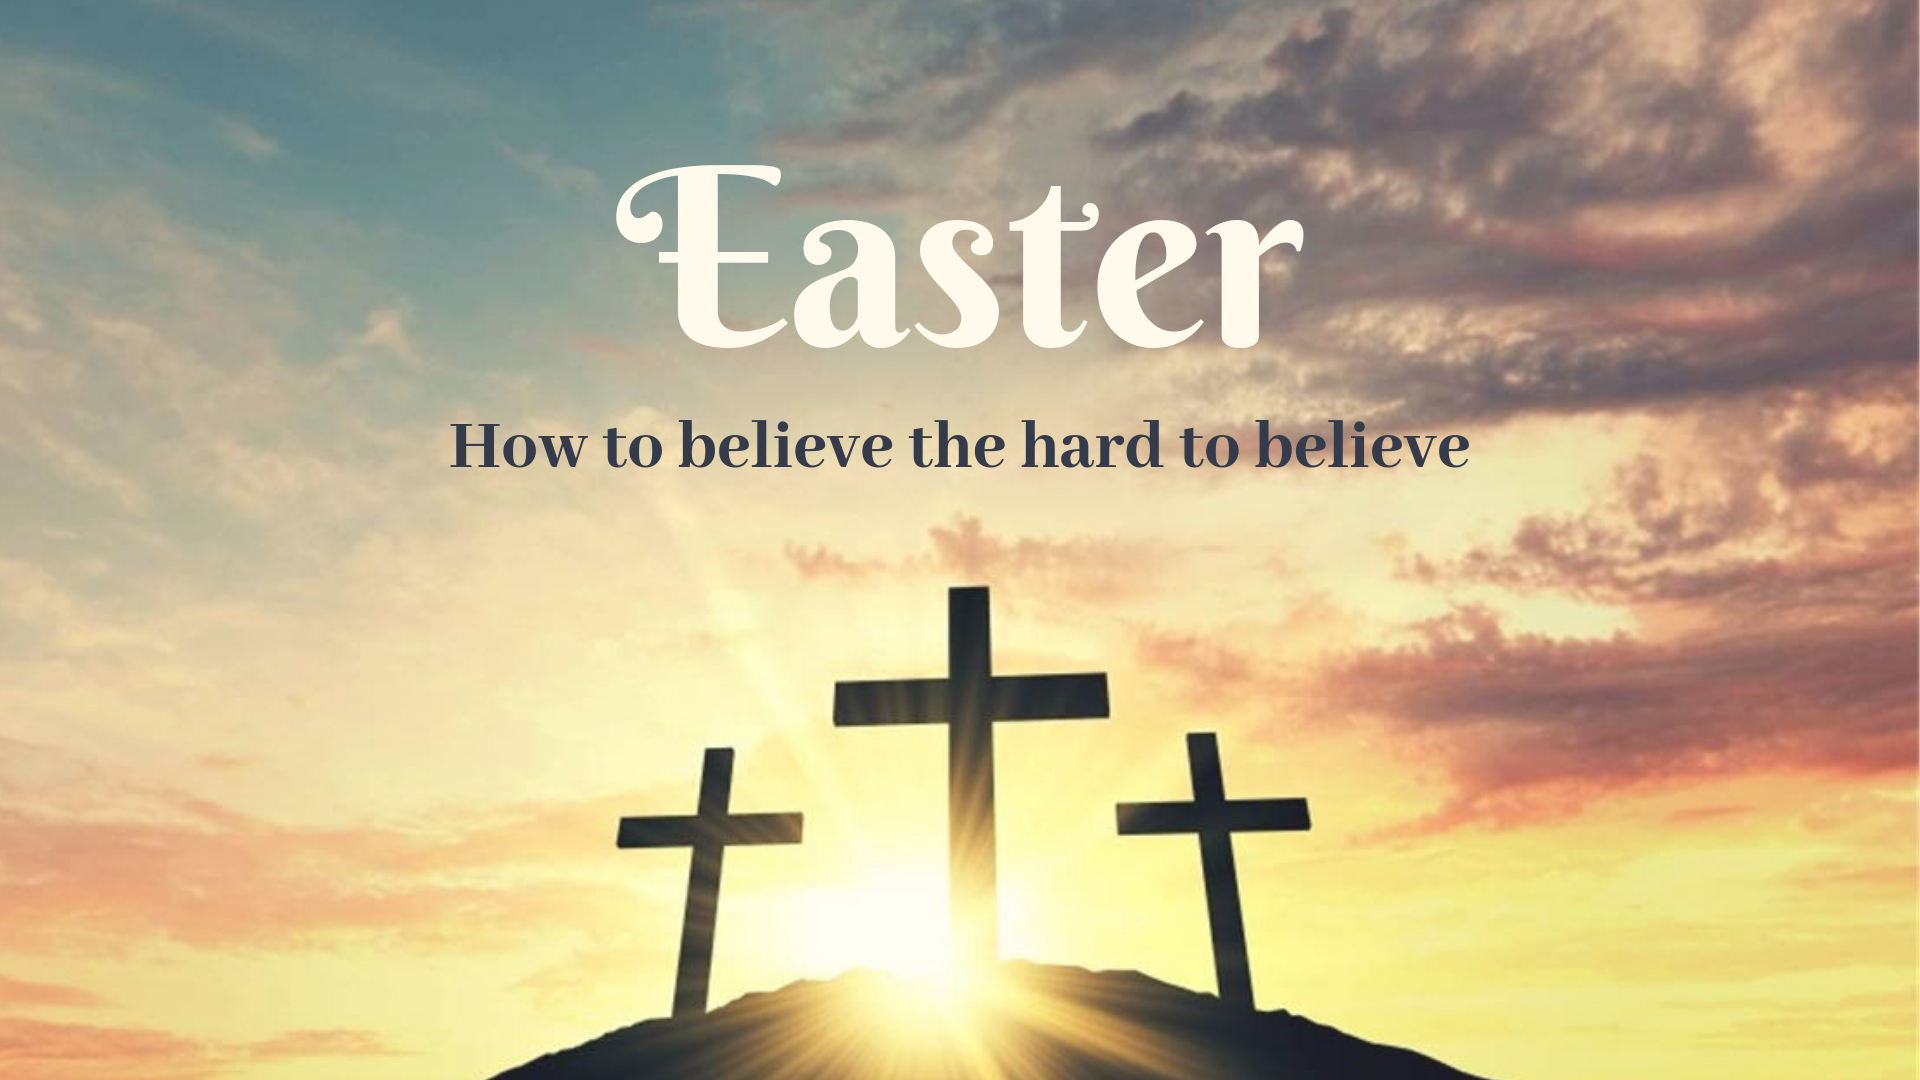 Easter: How to believe the hard to believe